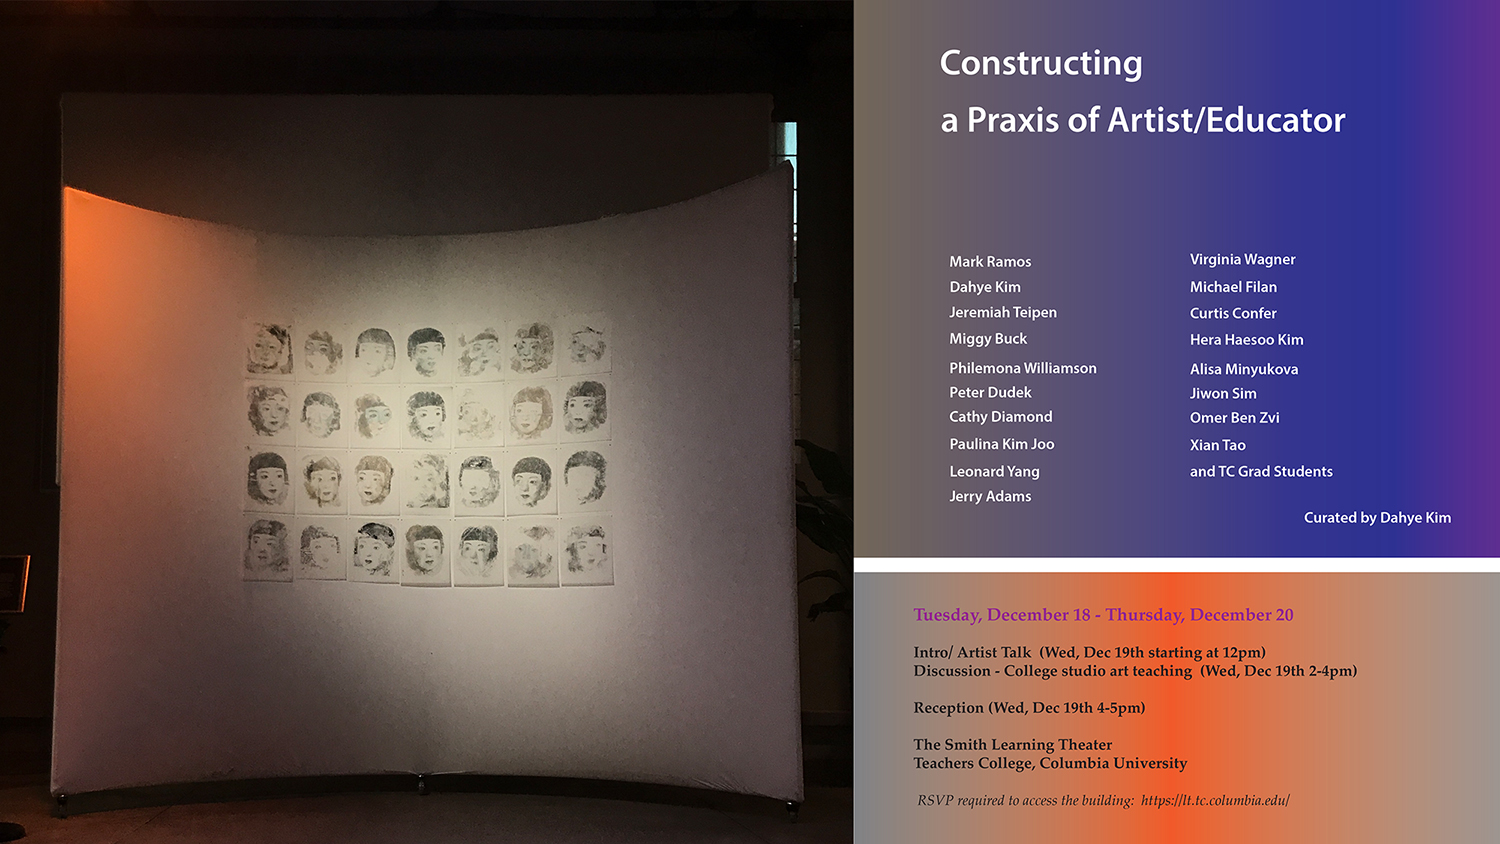 Constructing a Praxis of Artist/Educator   December 19th, 2018  The Smith Learning Theater  Teachers College, Columbia University